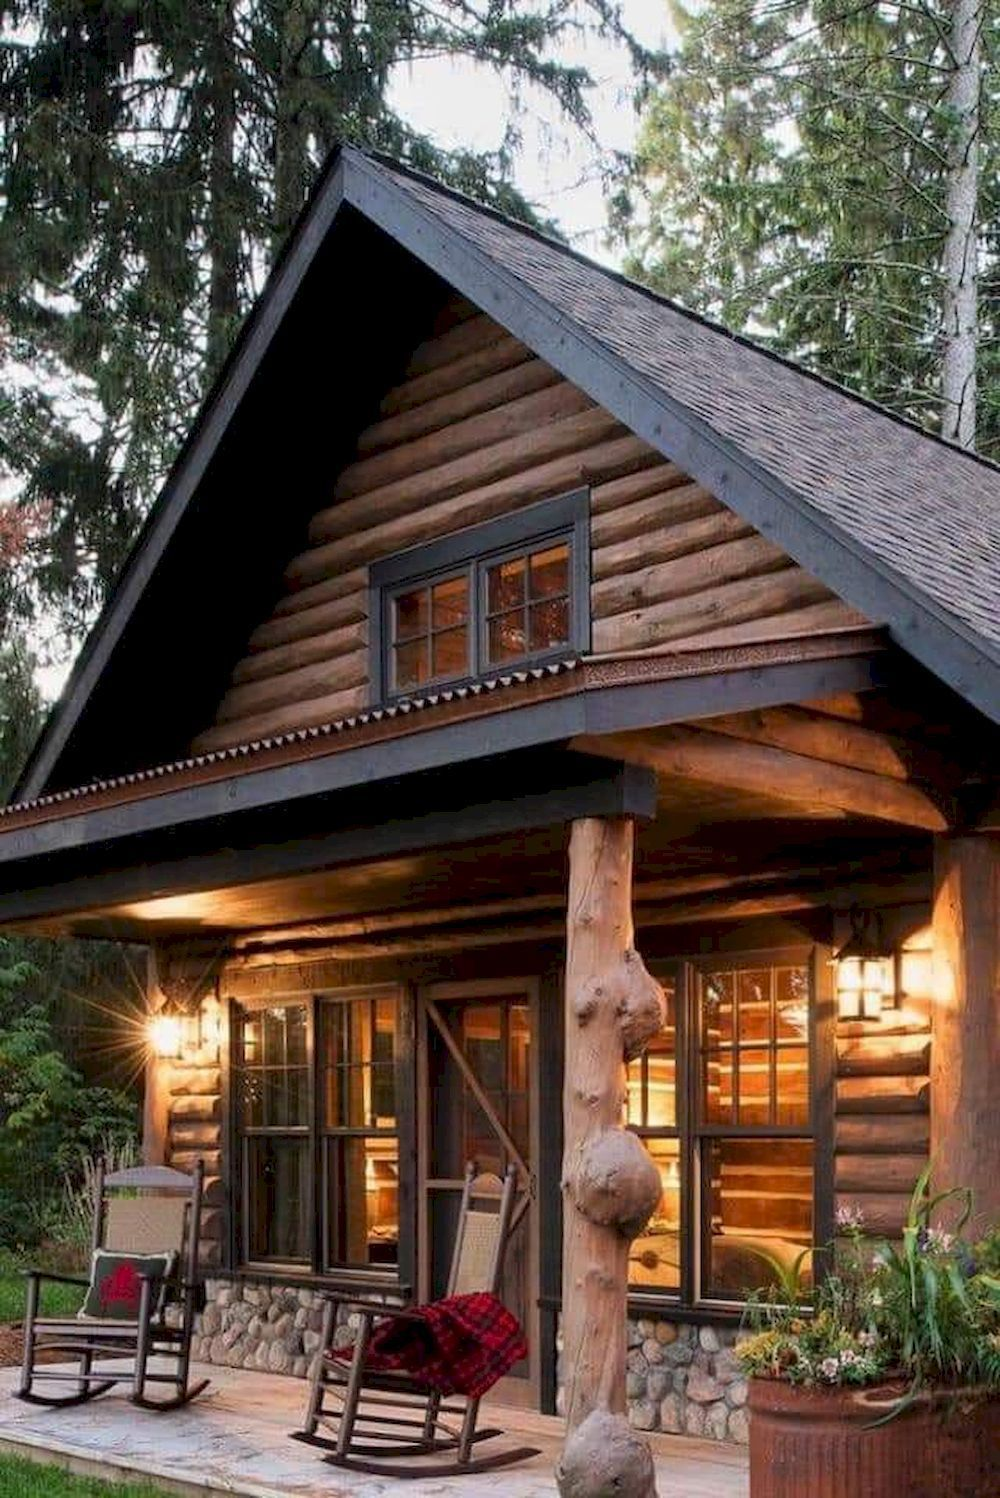 Why The Log Cabins Are The Best In 2020 Rustic House Rustic Cabin Log Homes